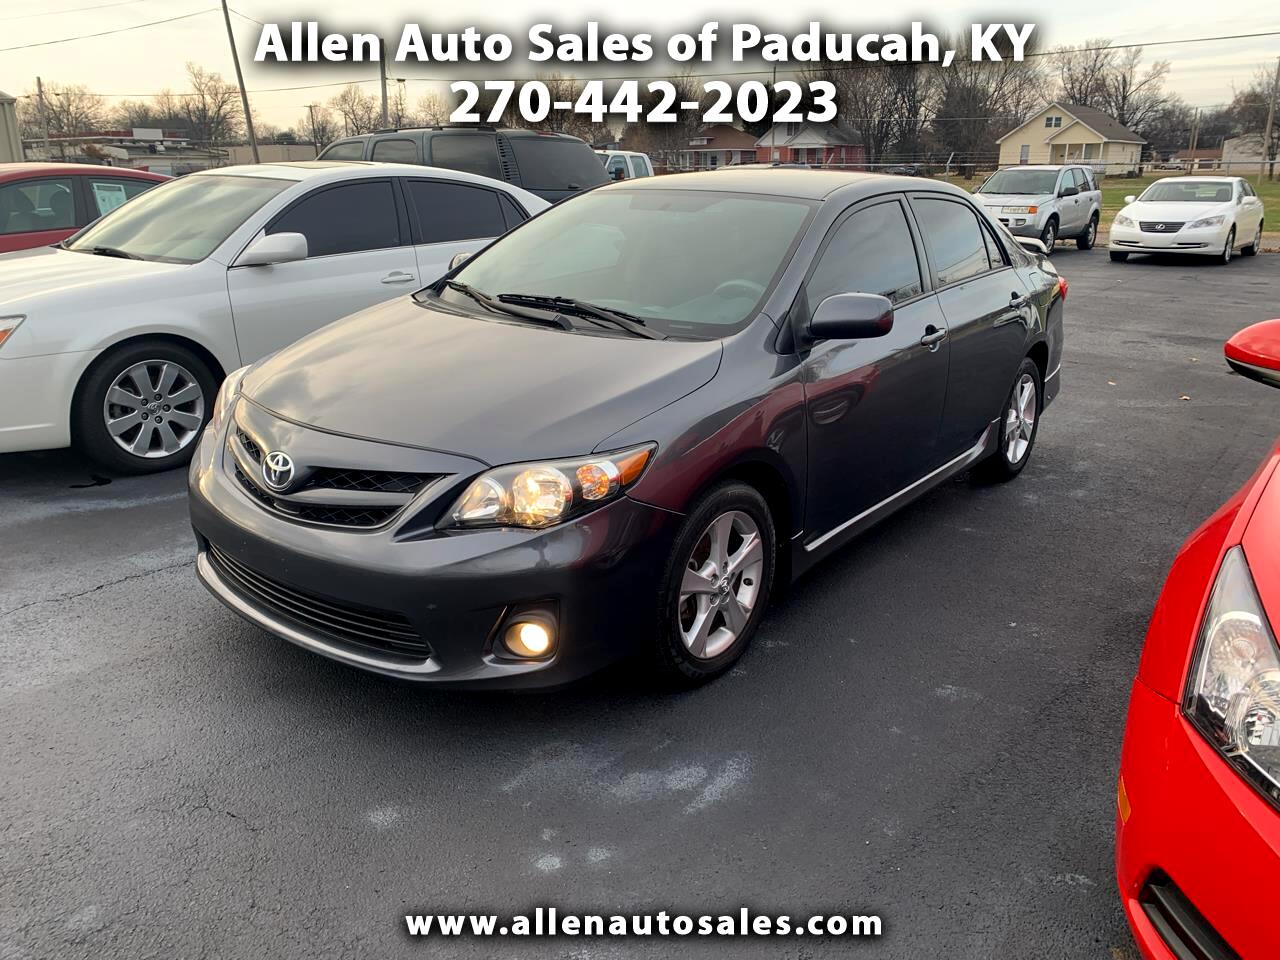 Allen Auto Sales >> Used 2011 Toyota Corolla For Sale In Paducah Ky 42001 Allen Auto Sales